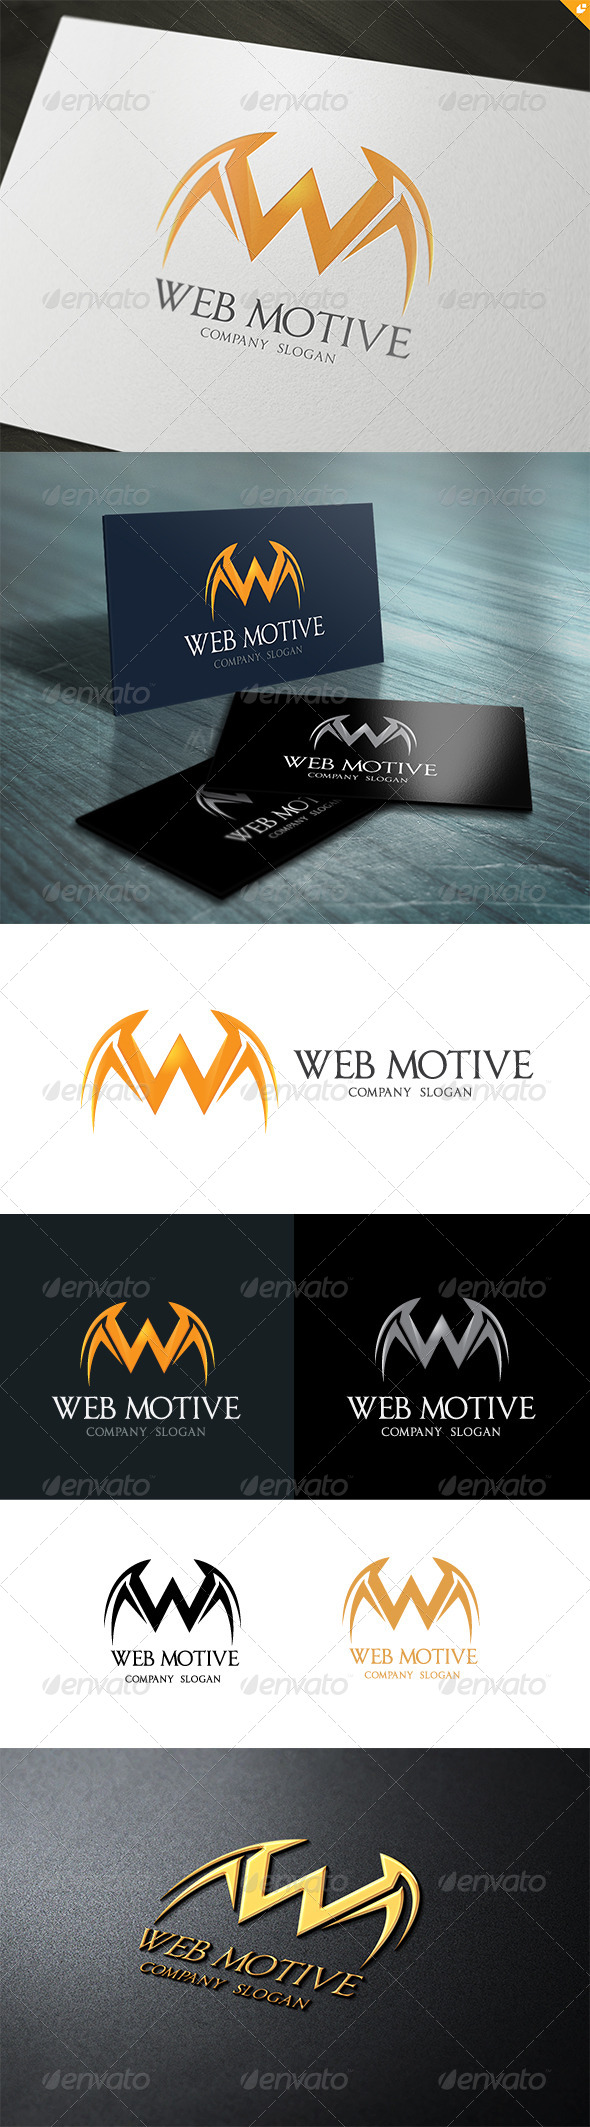 GraphicRiver Web Motive 5155711